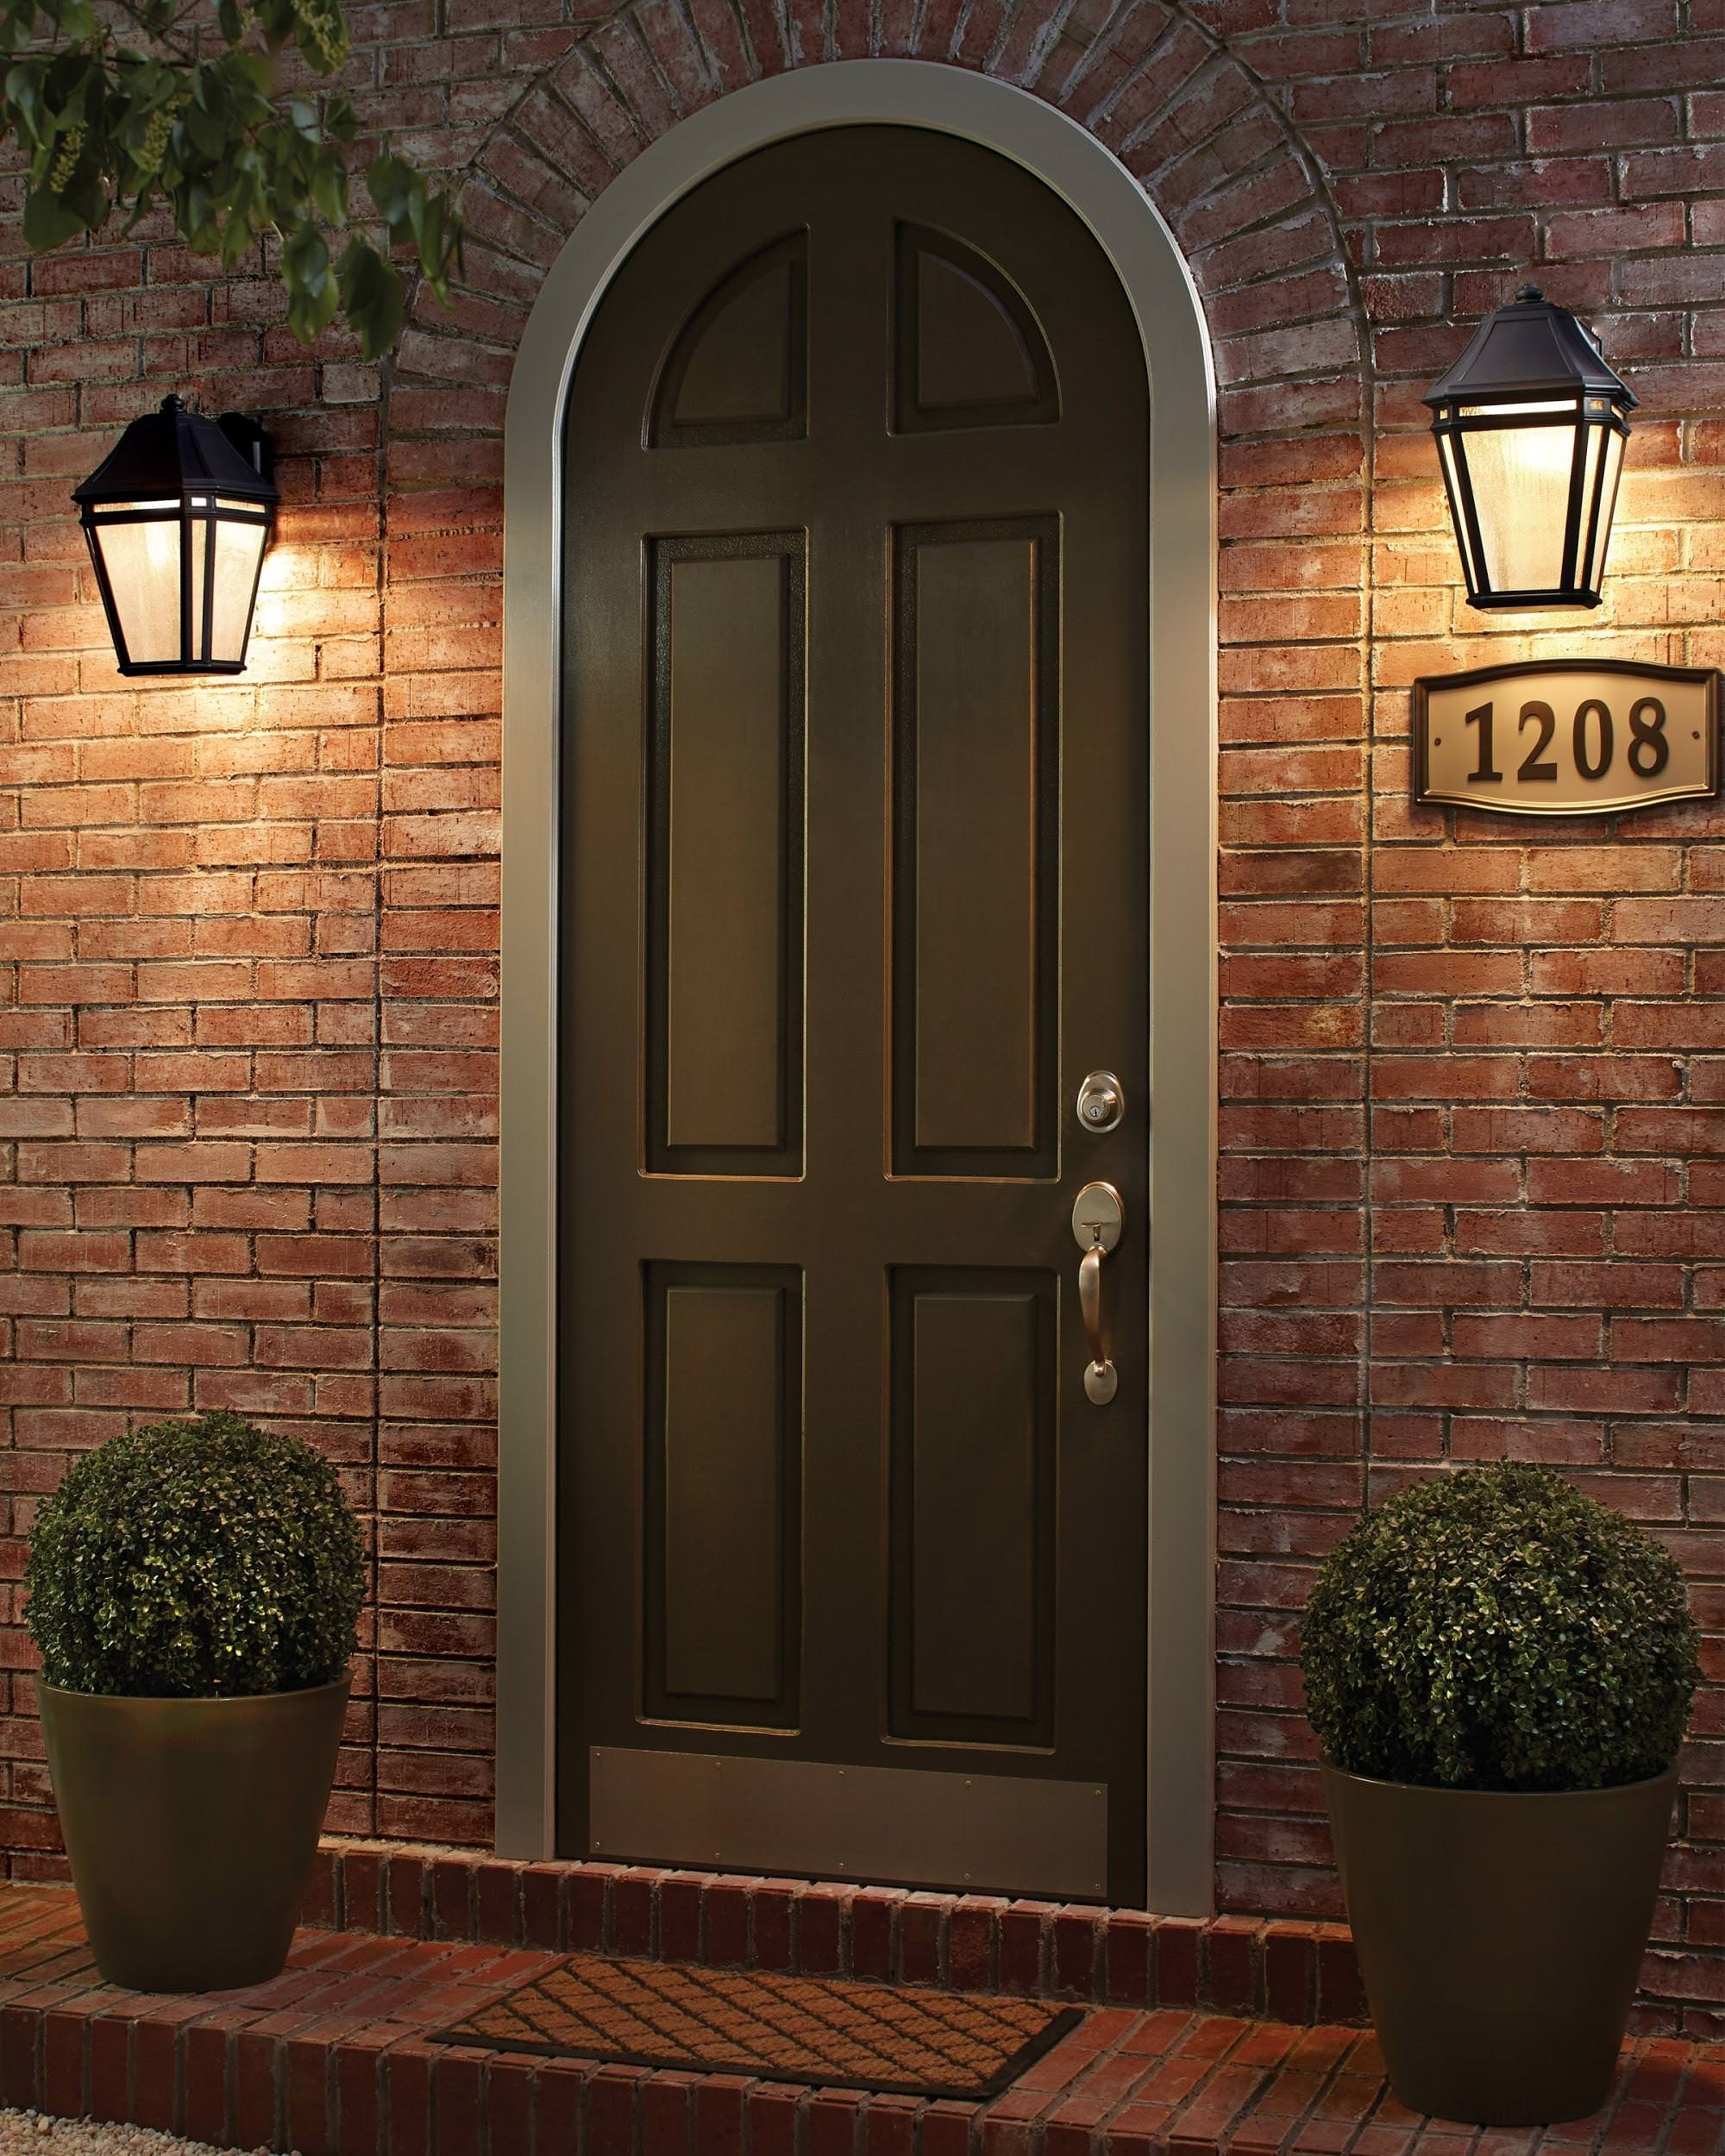 15 Different Outdoor Lighting Ideas For Your Home (All Types) inside Outdoor Lanterns for Front Porch (Image 1 of 20)